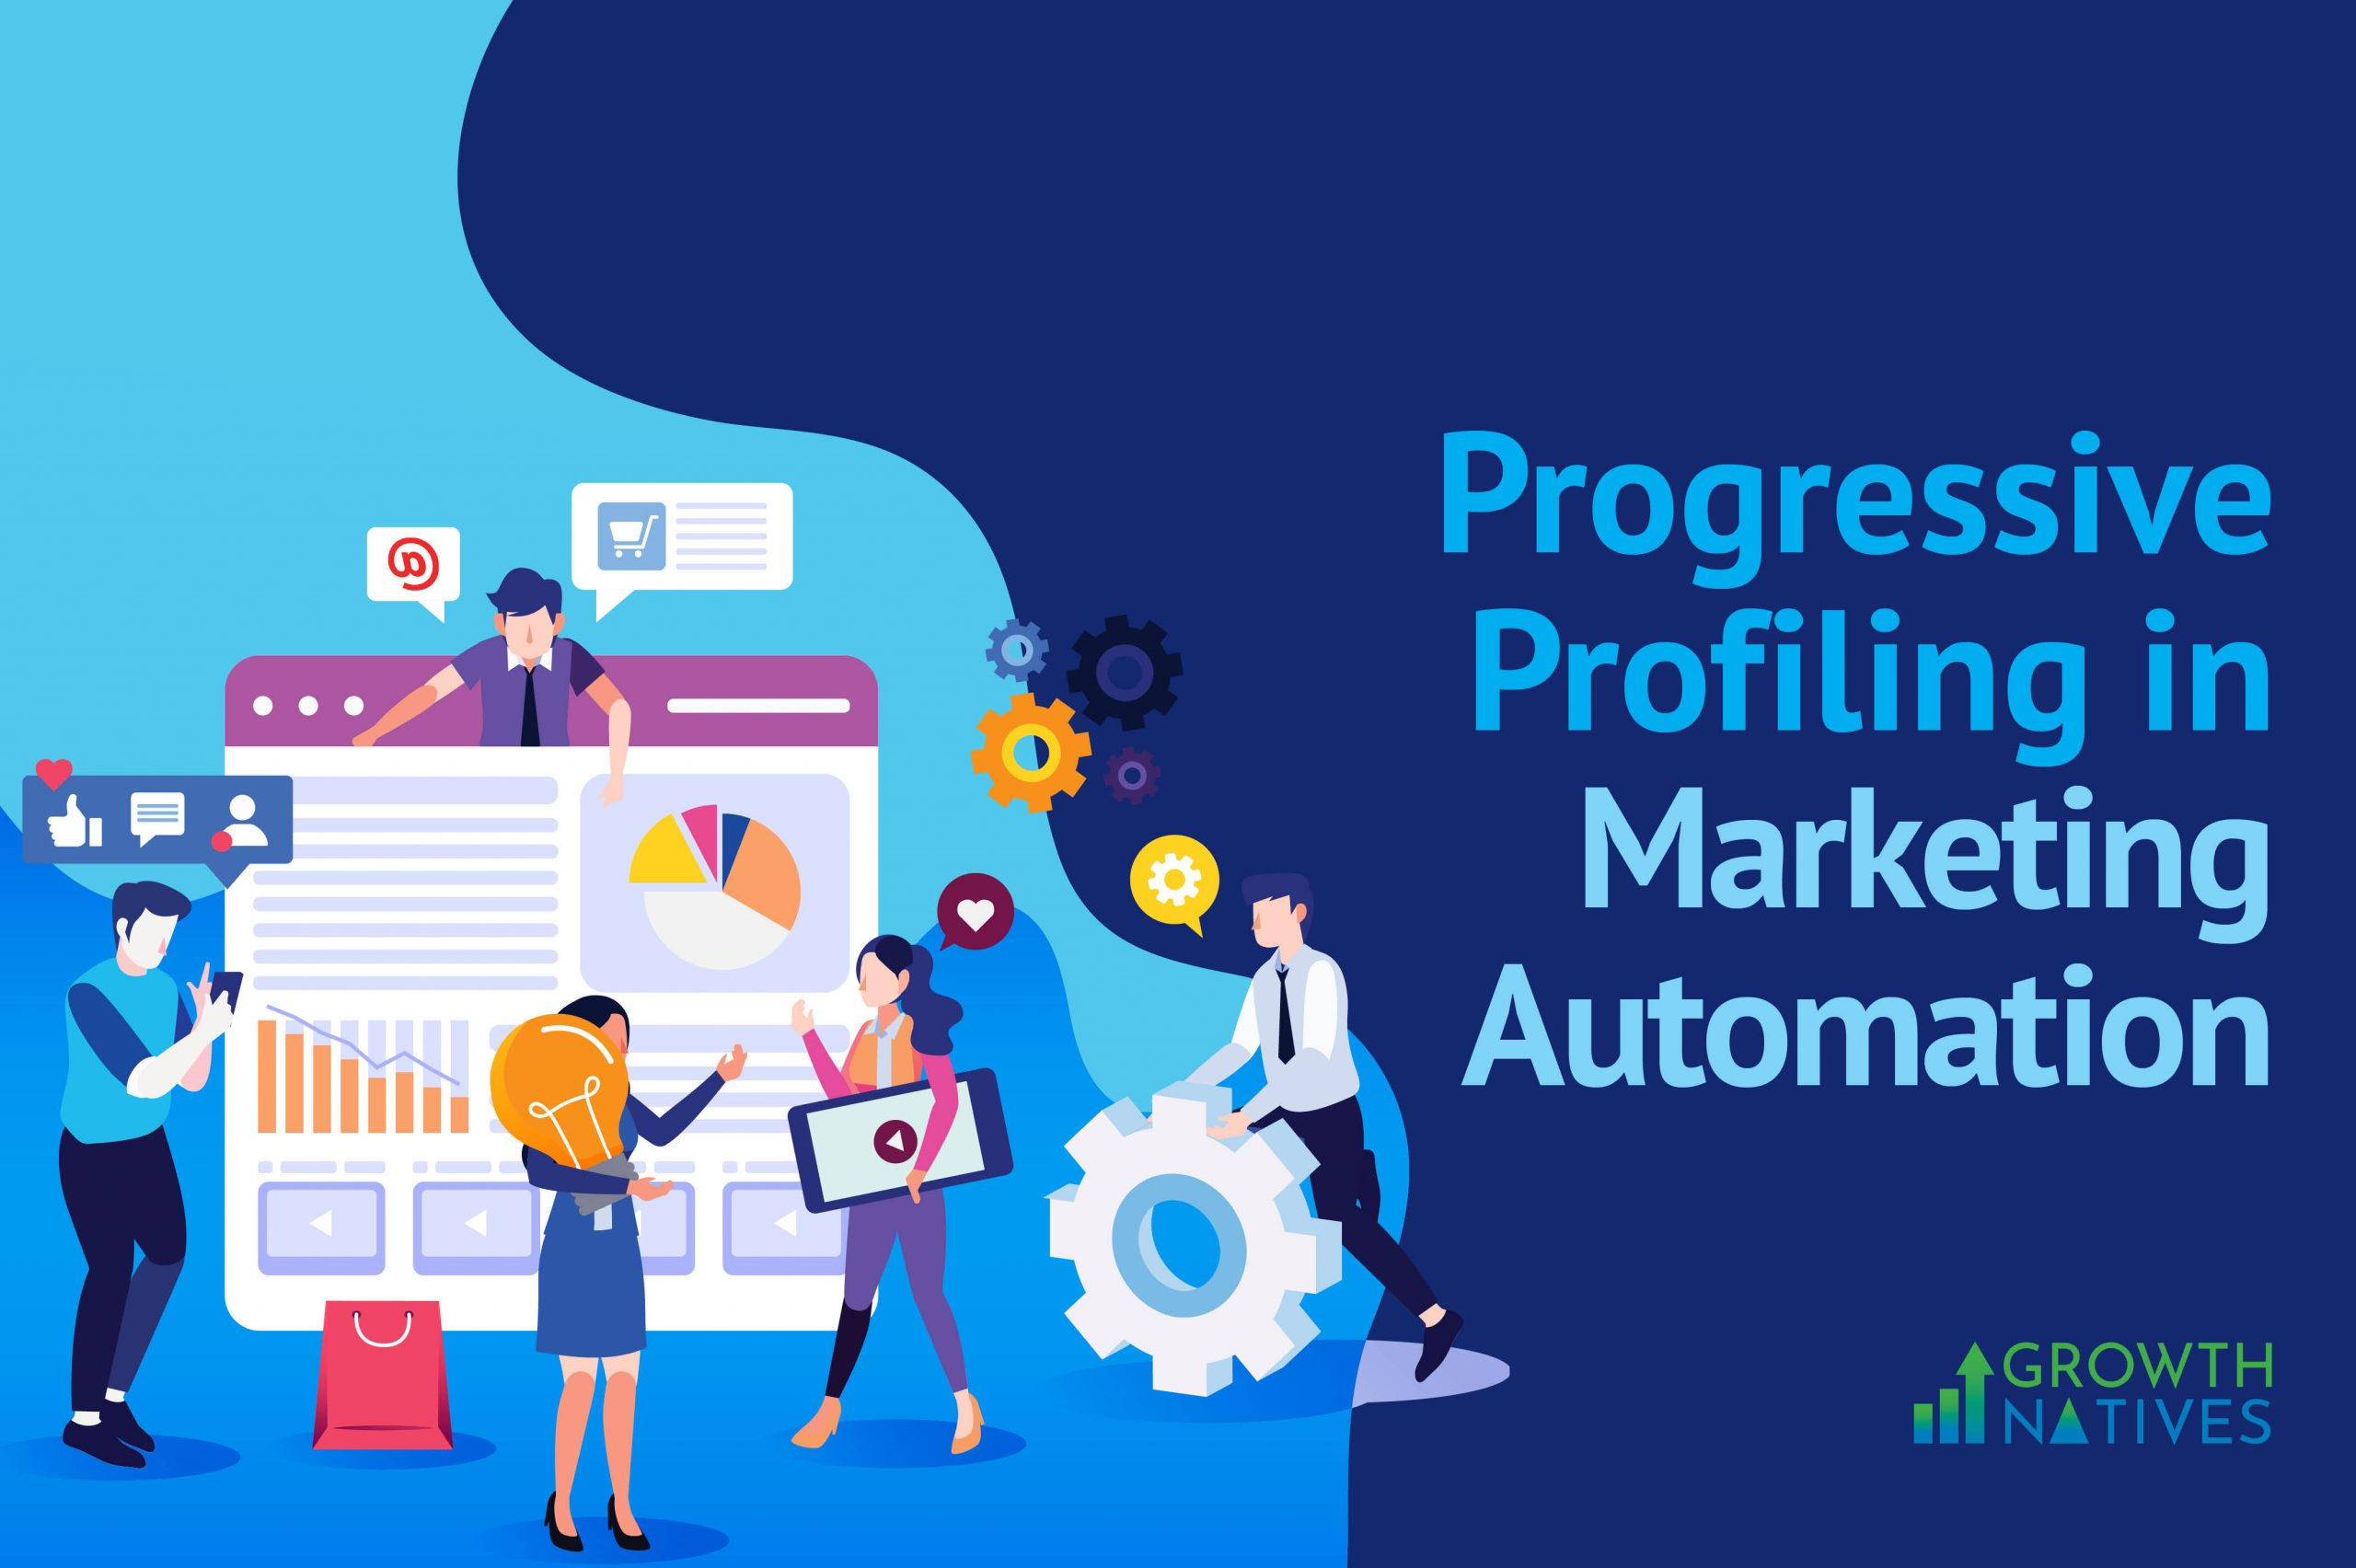 progressive profiling in Mktg. Automation